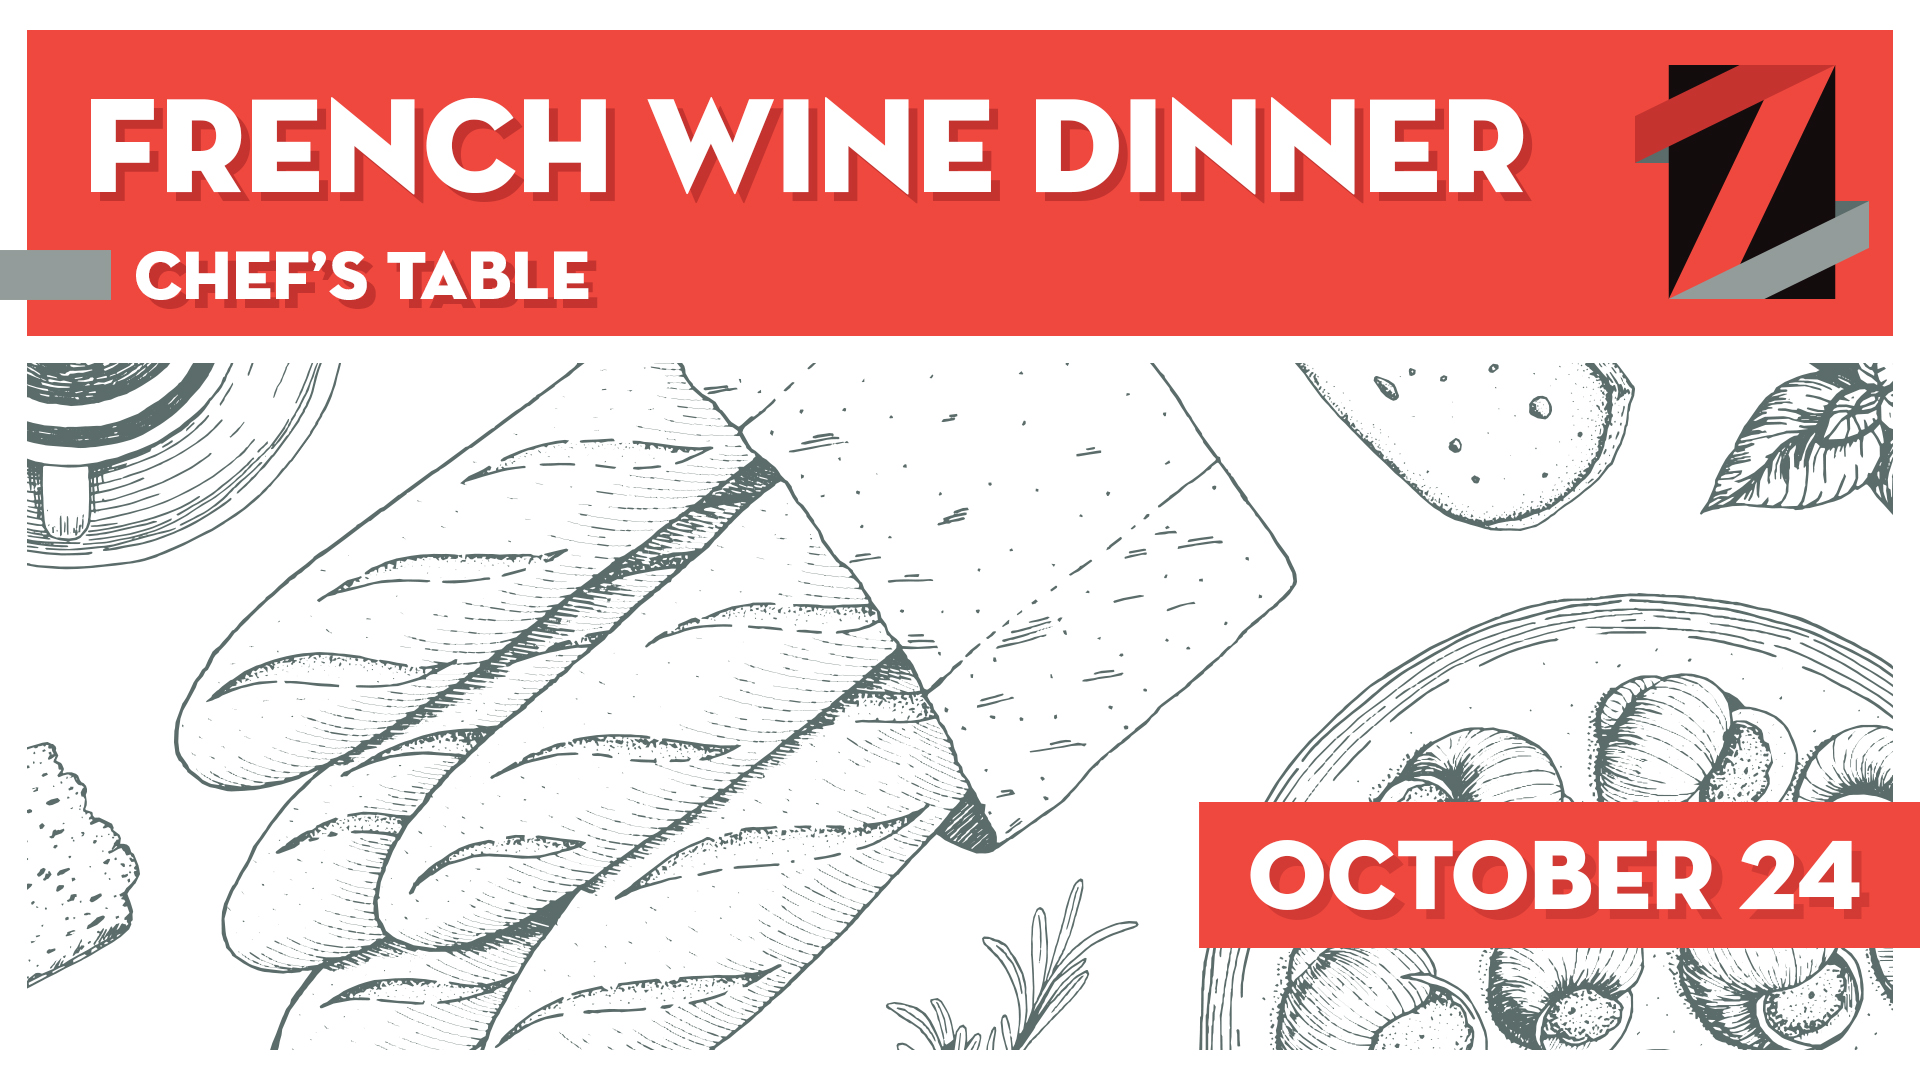 French Wine Dinner at the Chef's Table